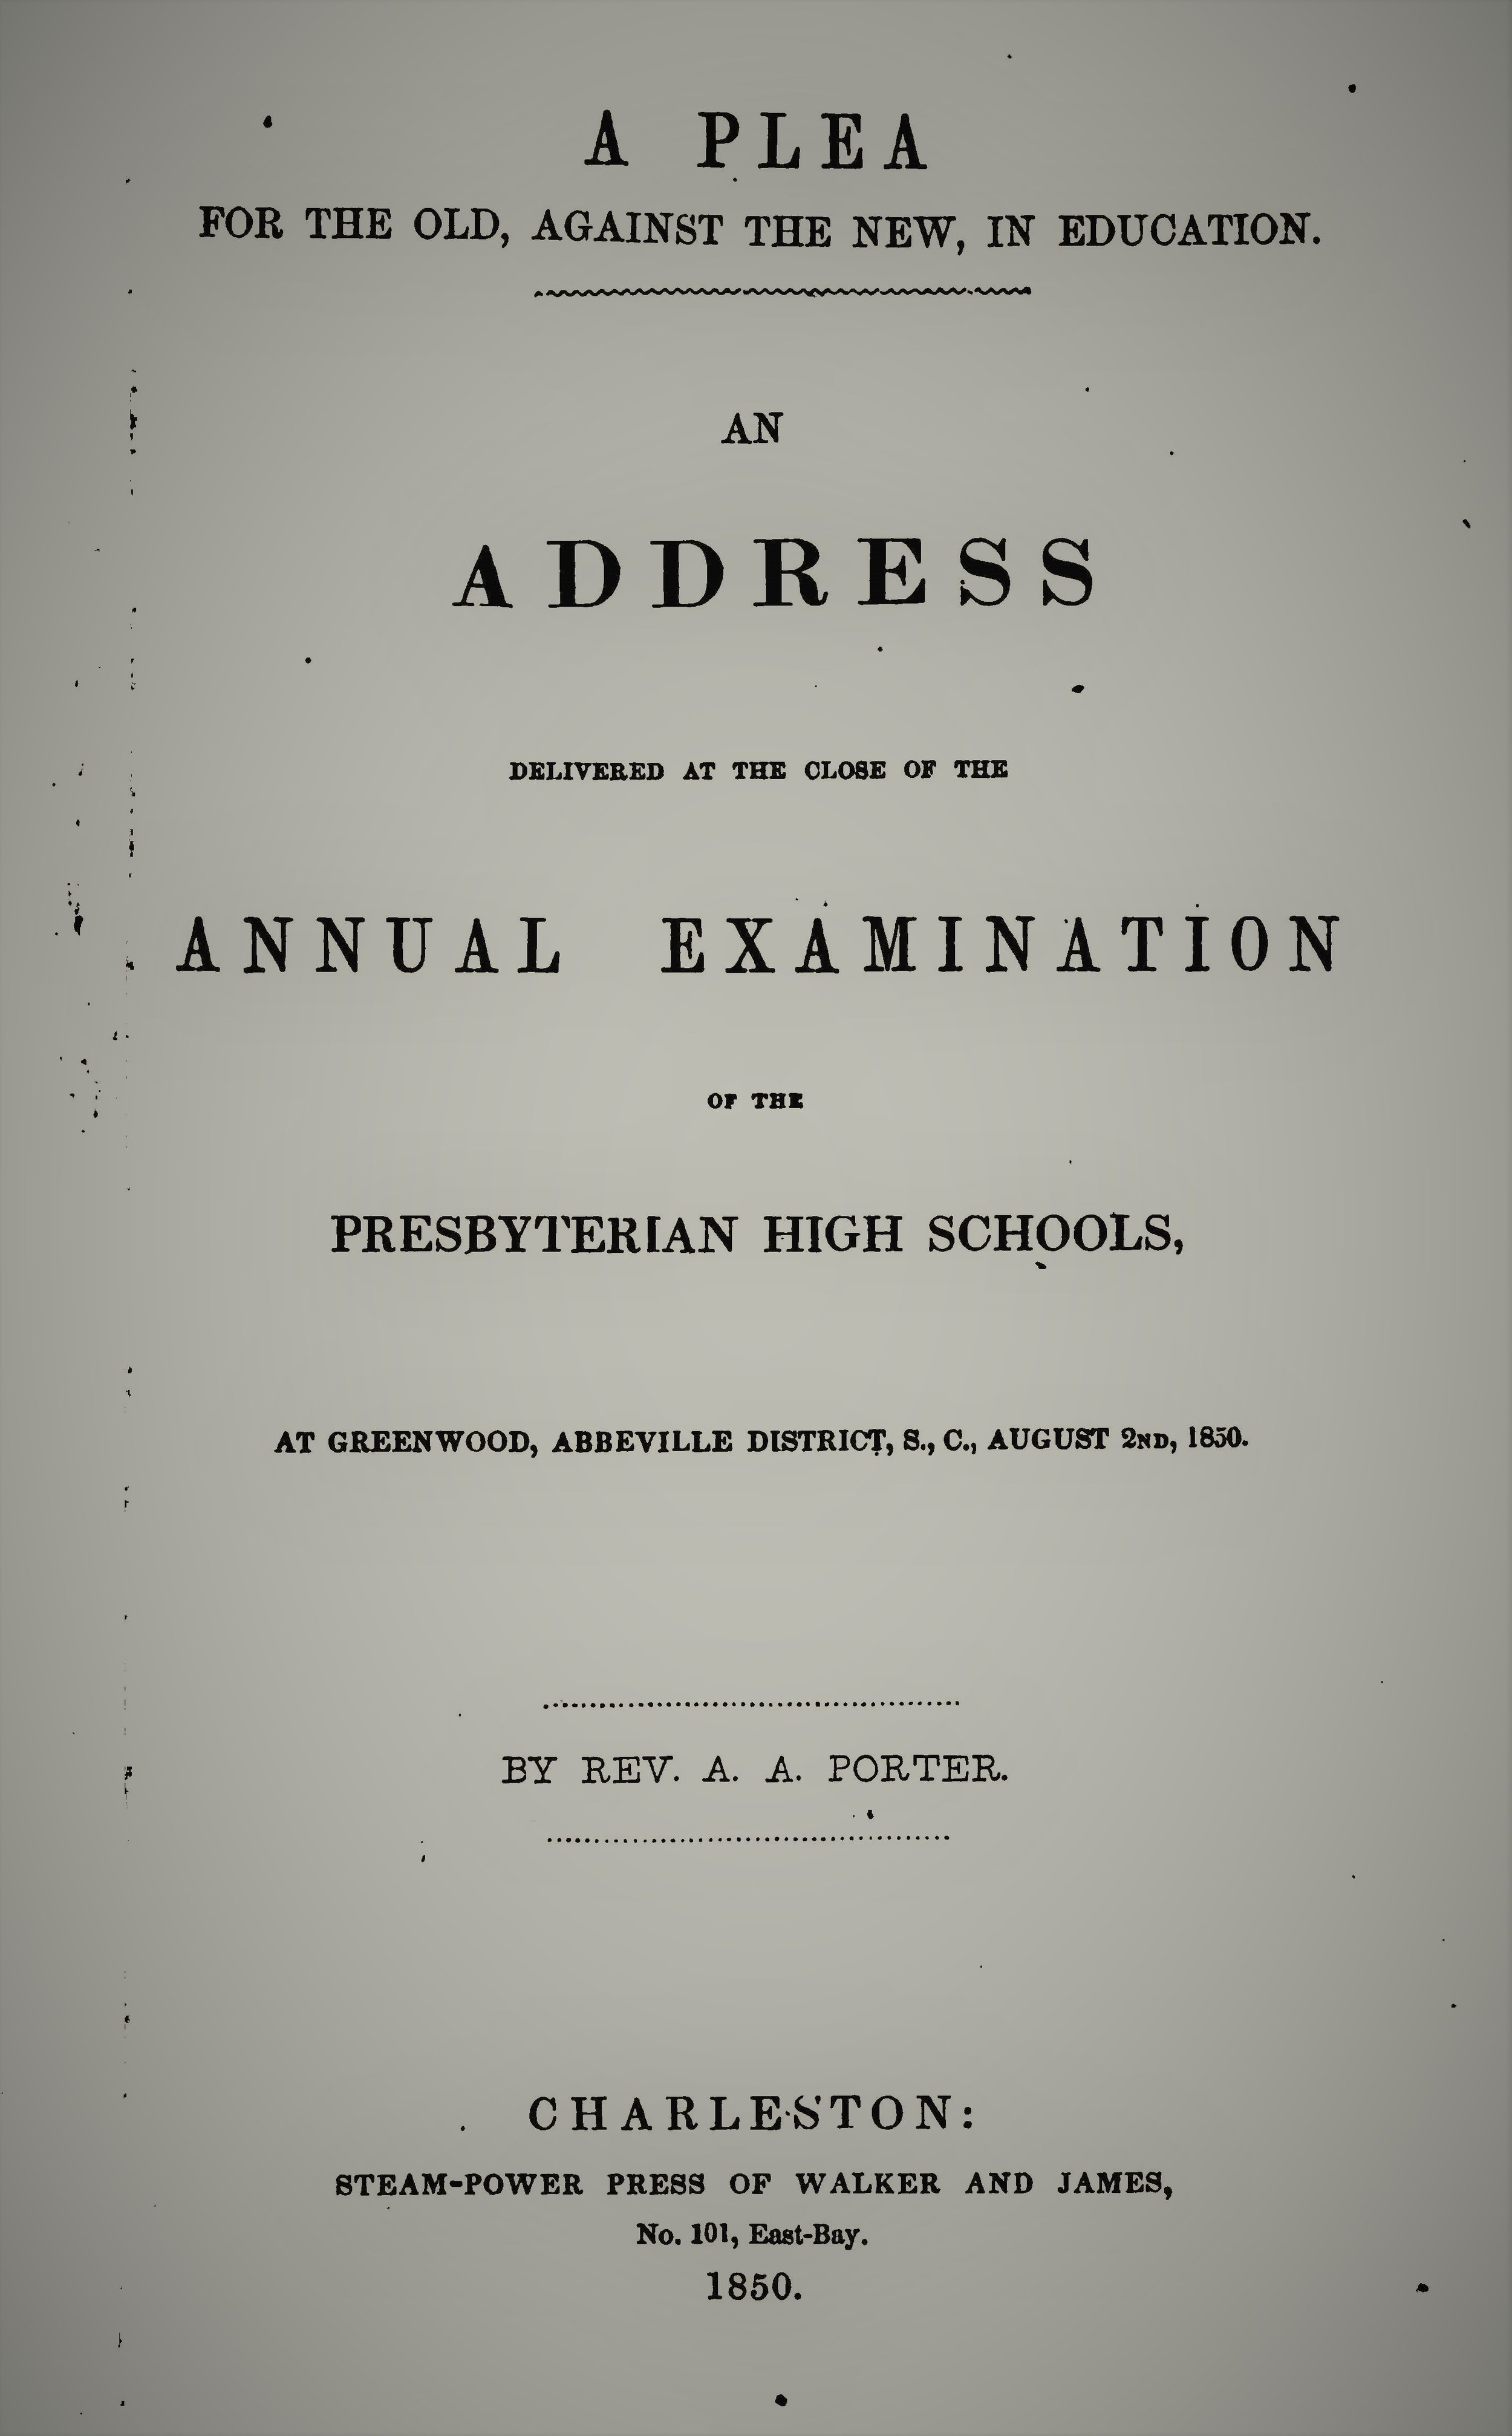 Porter, Abner Addison - A Plea for the Old Against the New in Education.jpg